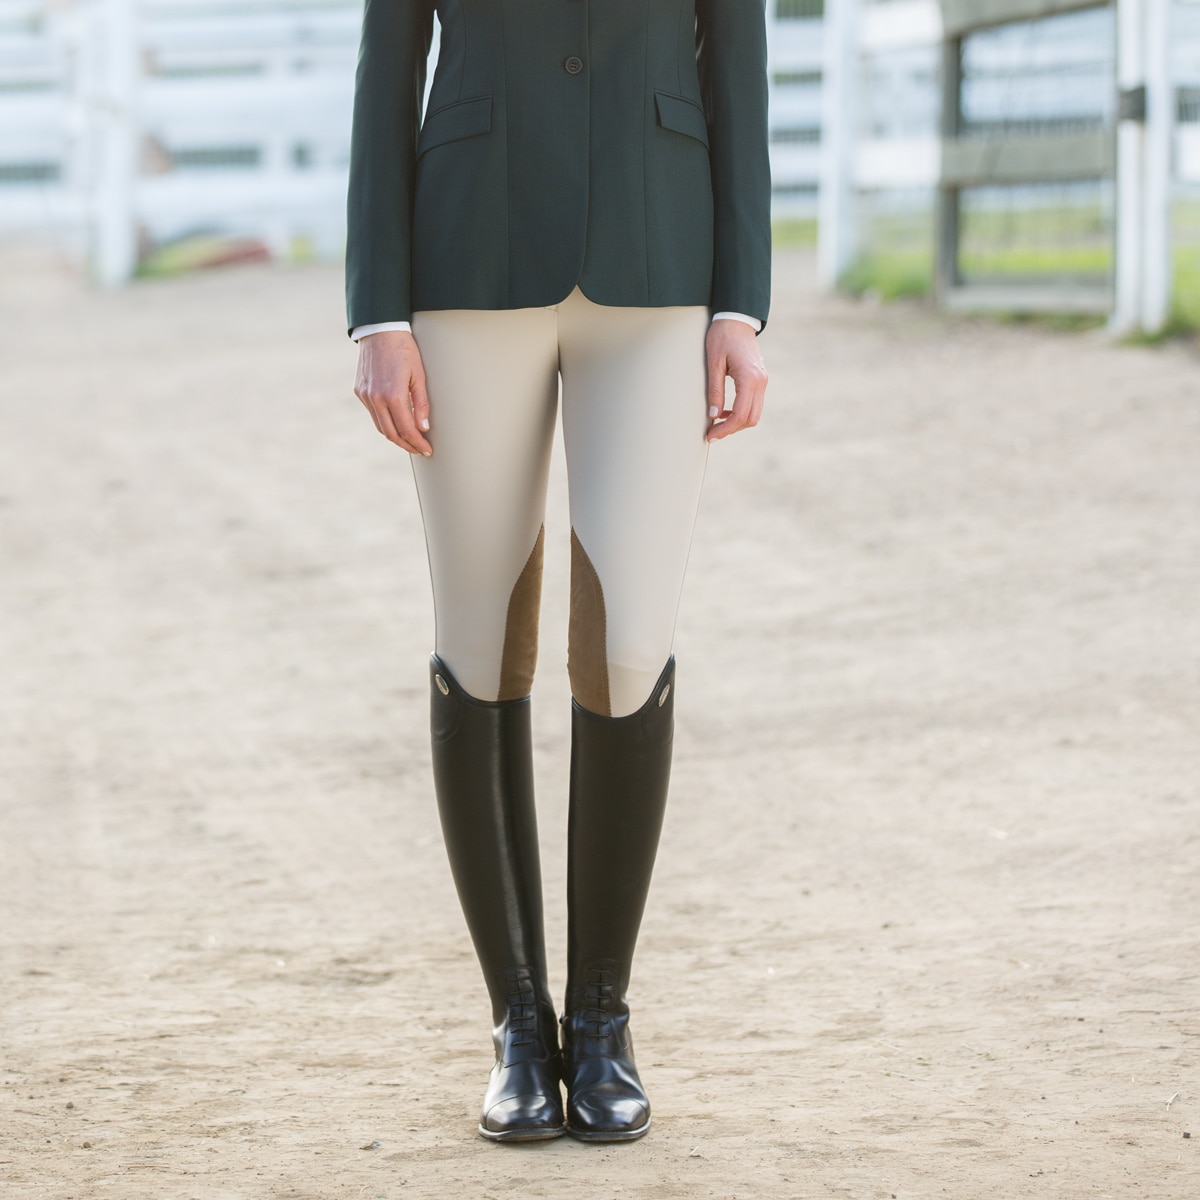 All Sizes RJ Classics Gulf Low Rise Front Zip Breeches Black/Brown Ladies